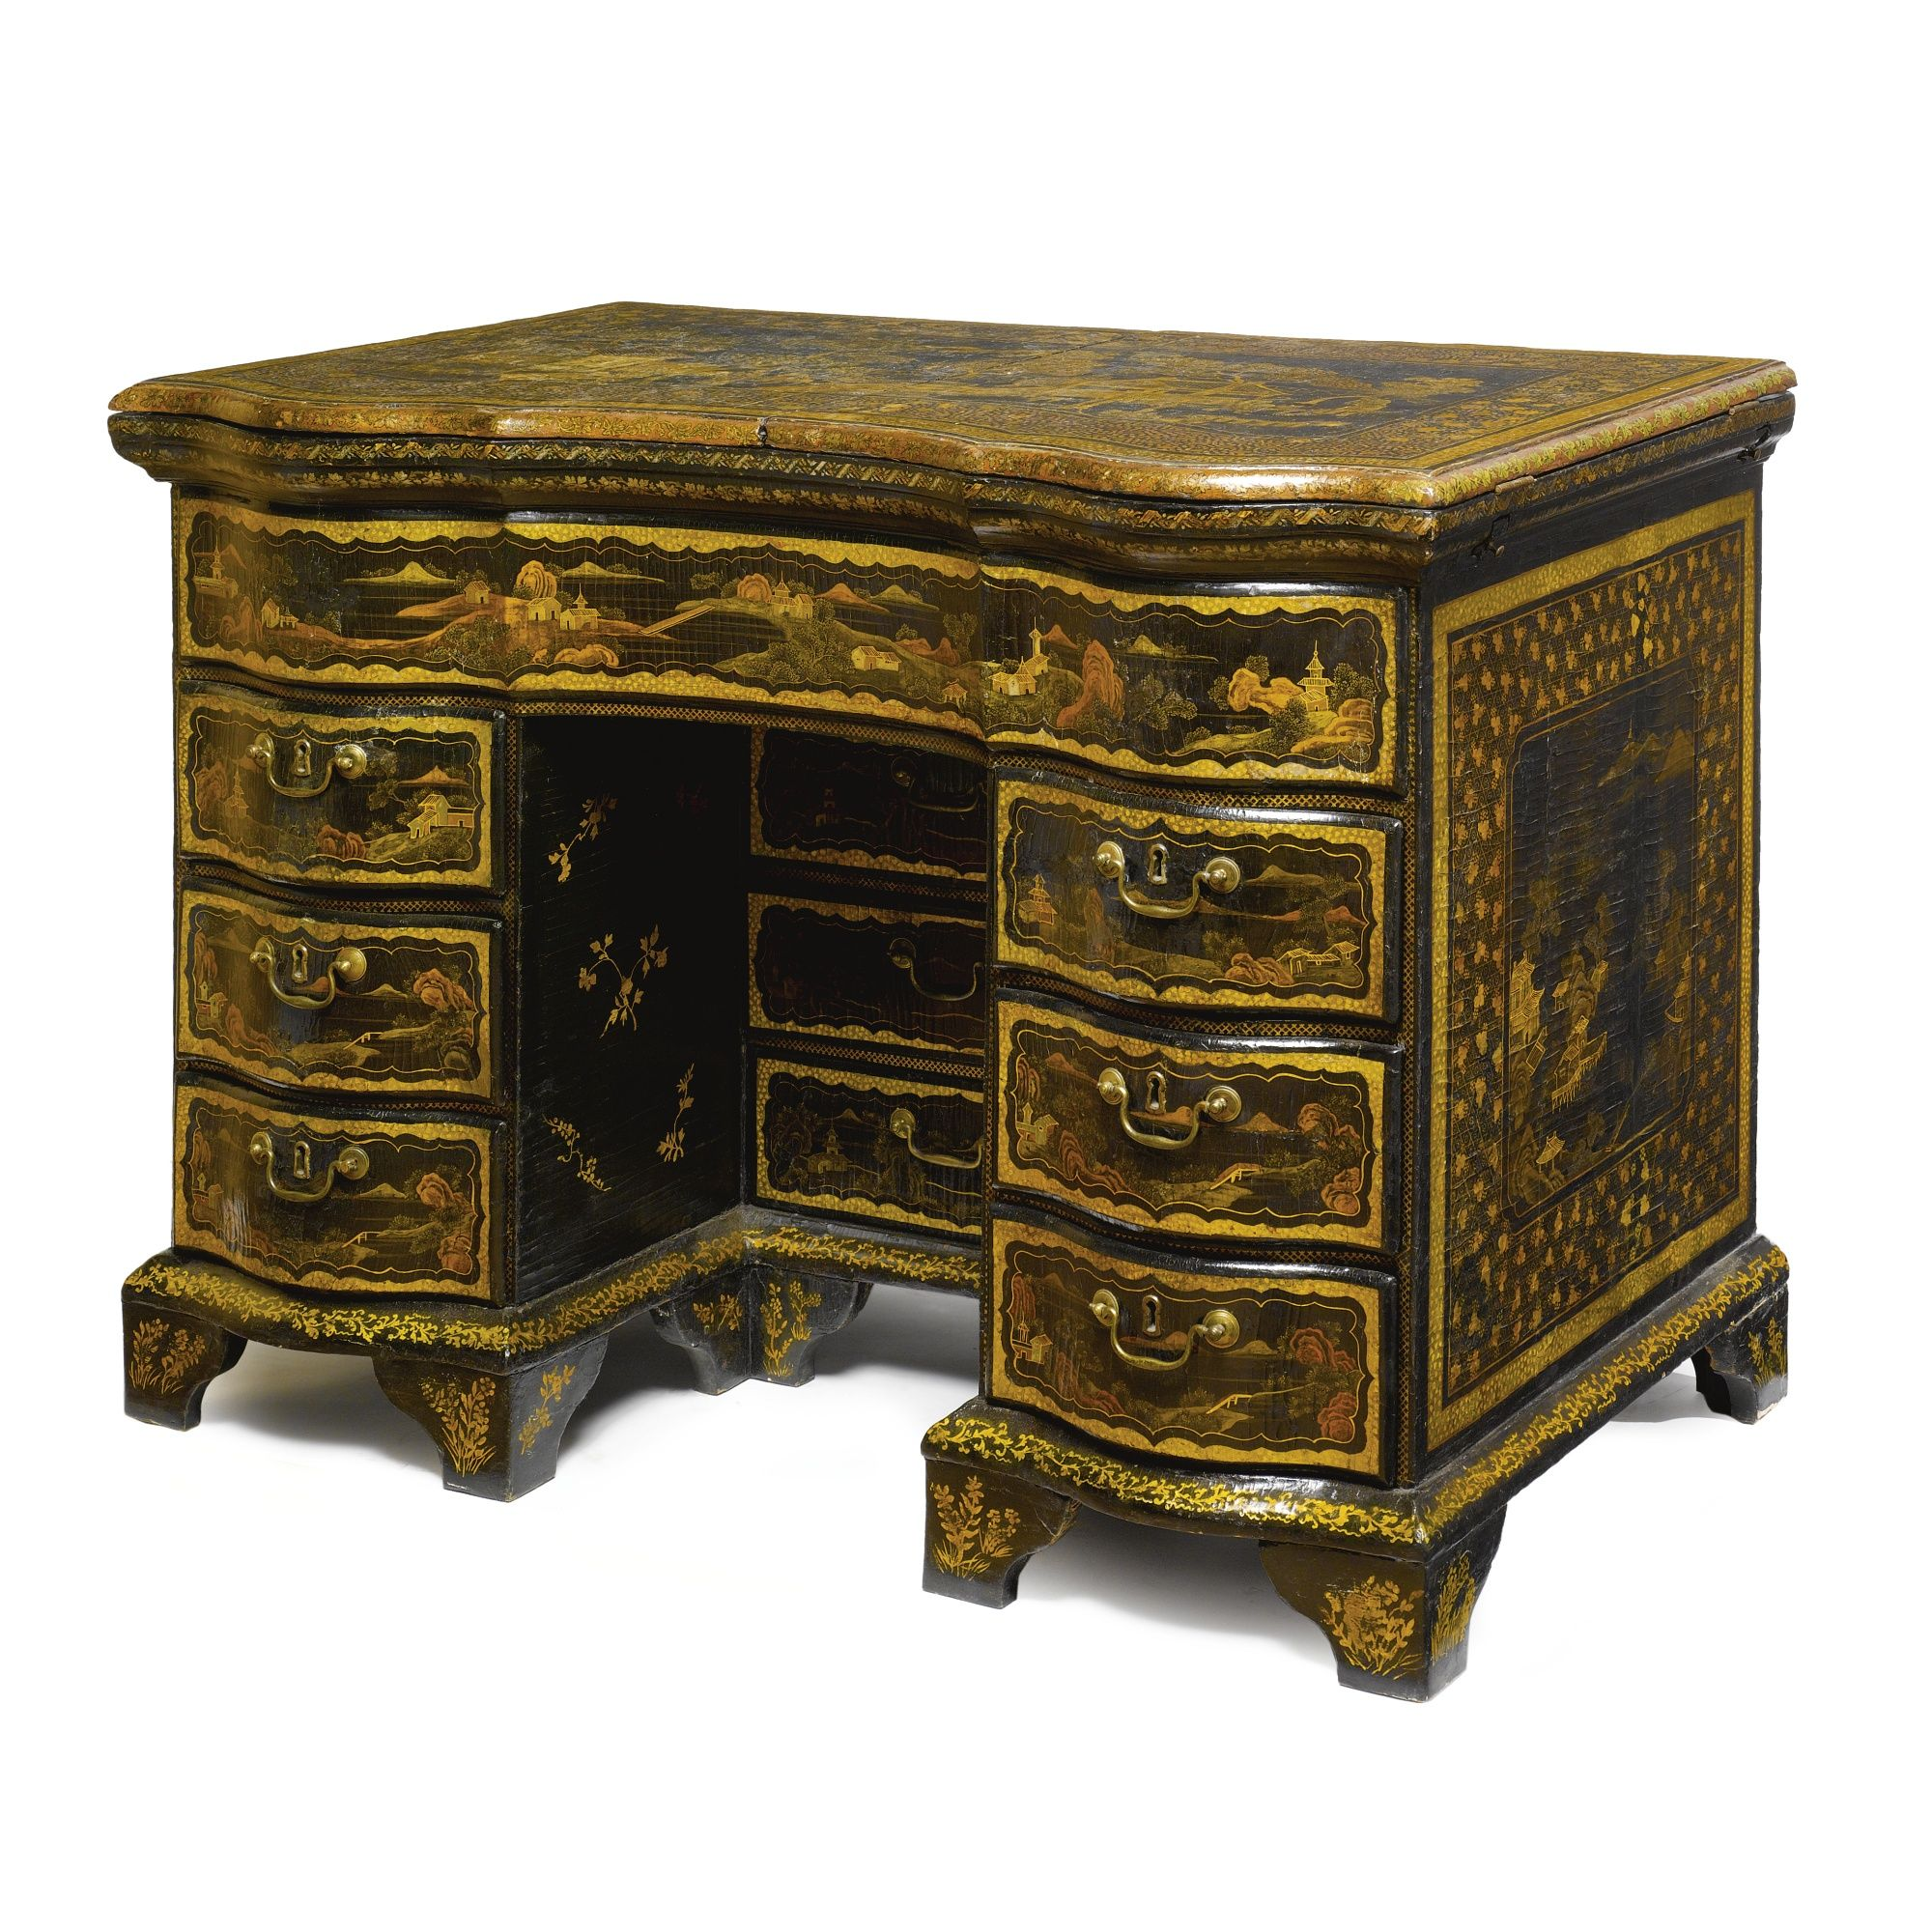 A Rare Chinese Export parcel-gilt black lacquer dressing table<br><P>late 18th century</P> | lot | Sotheby's